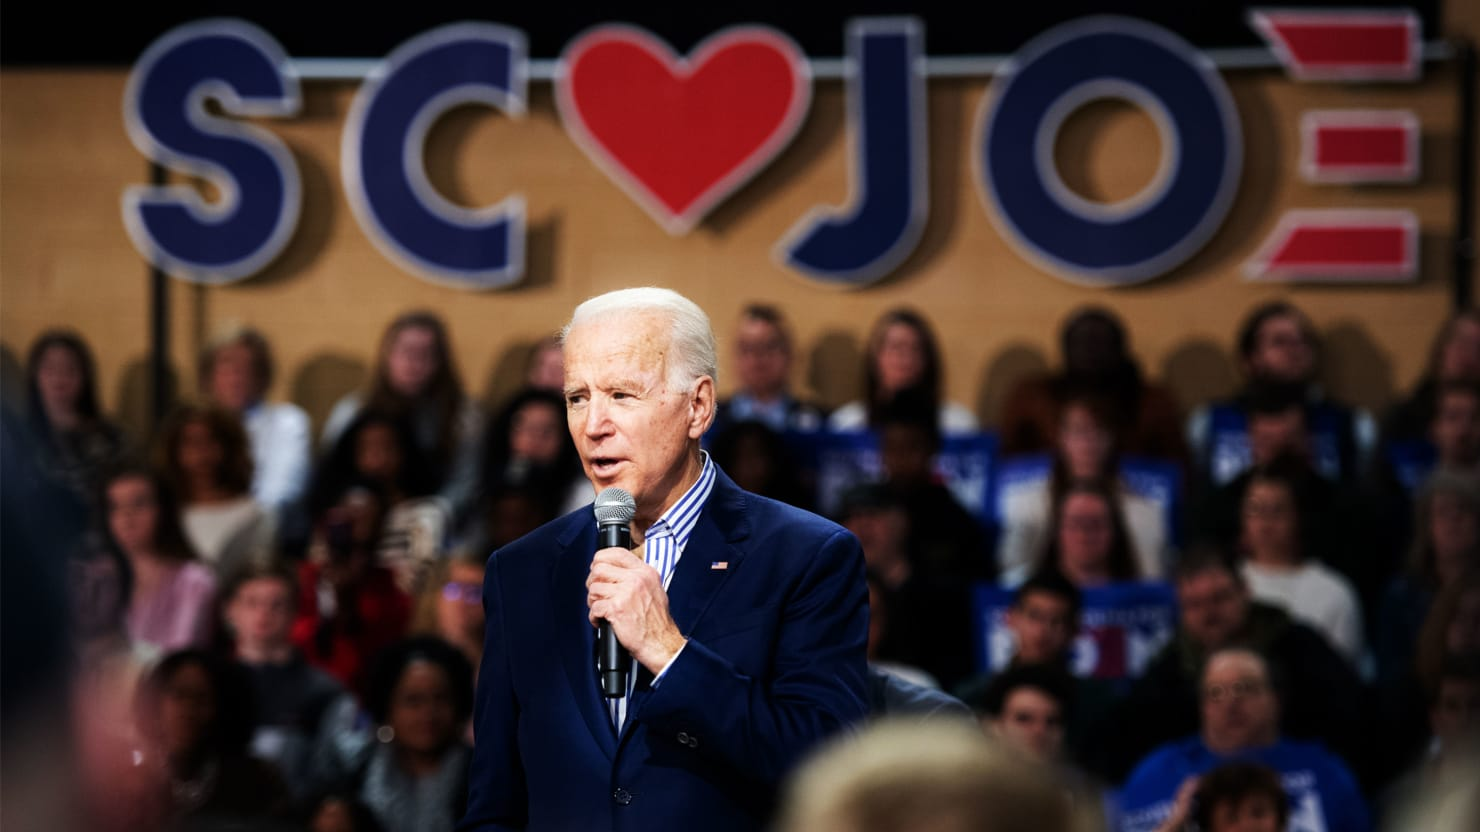 There's an Unexpected Feeling at a Biden Rally: Jubilance